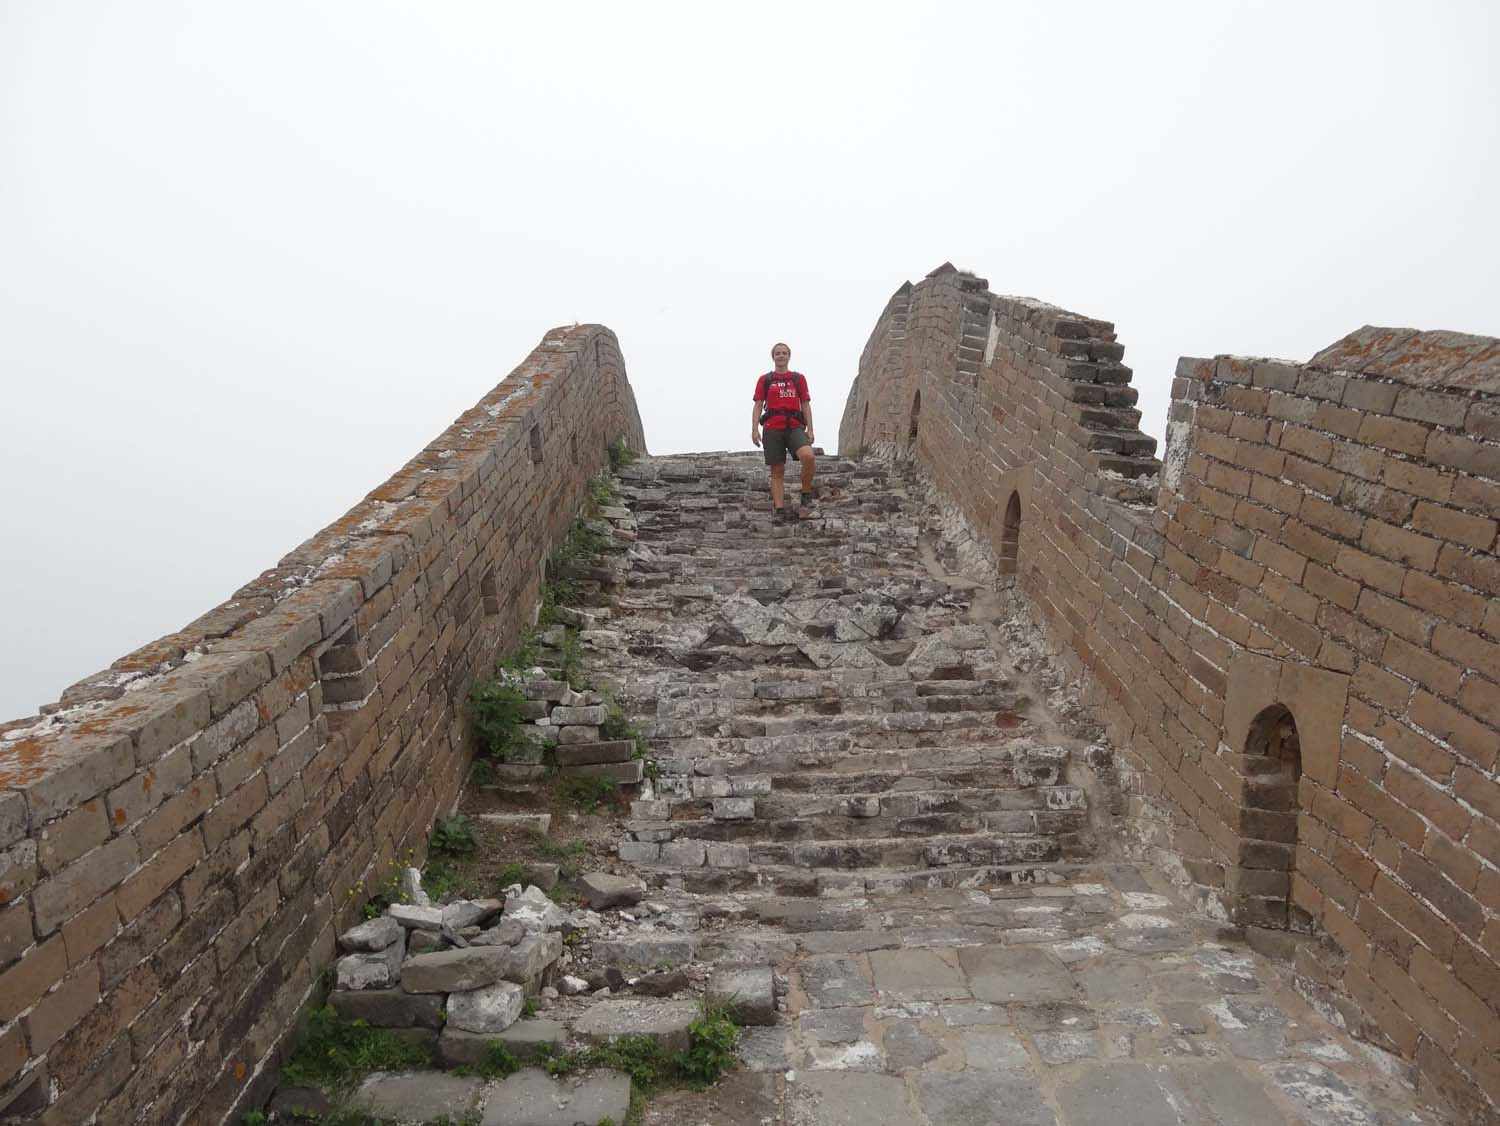 The sections at Jinshanling are not restored.